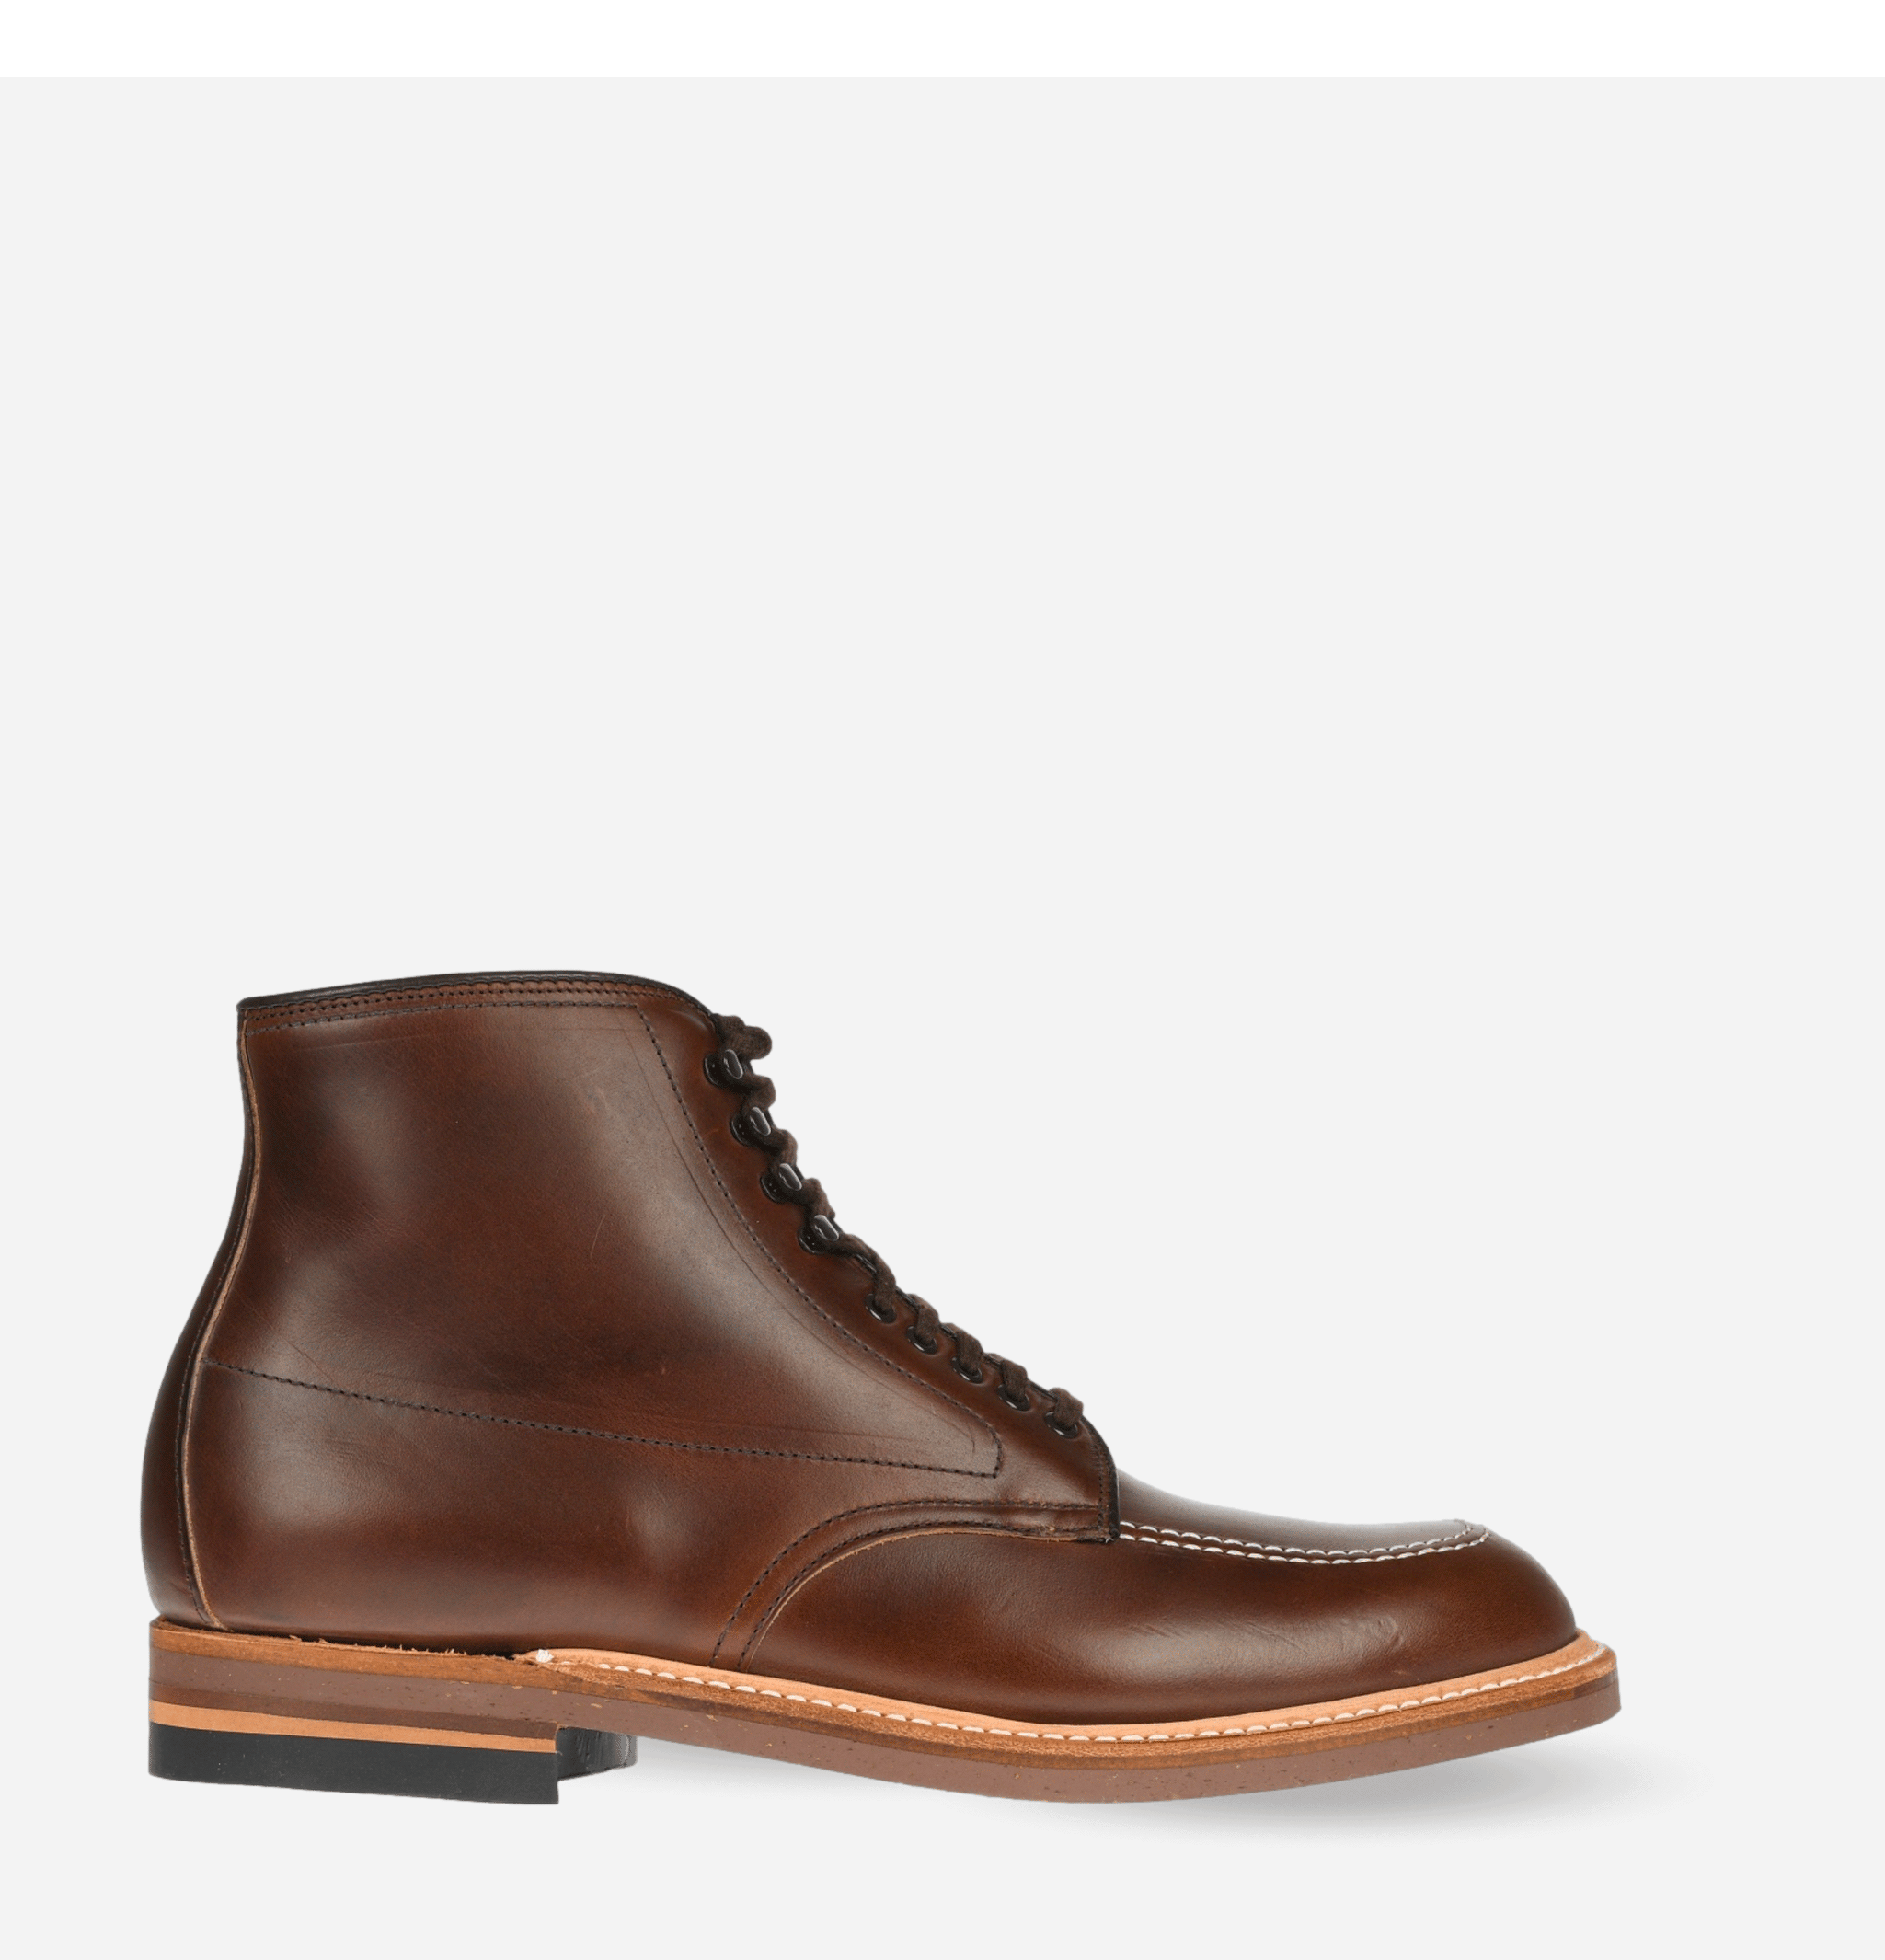 403 - Indy Boot Brown